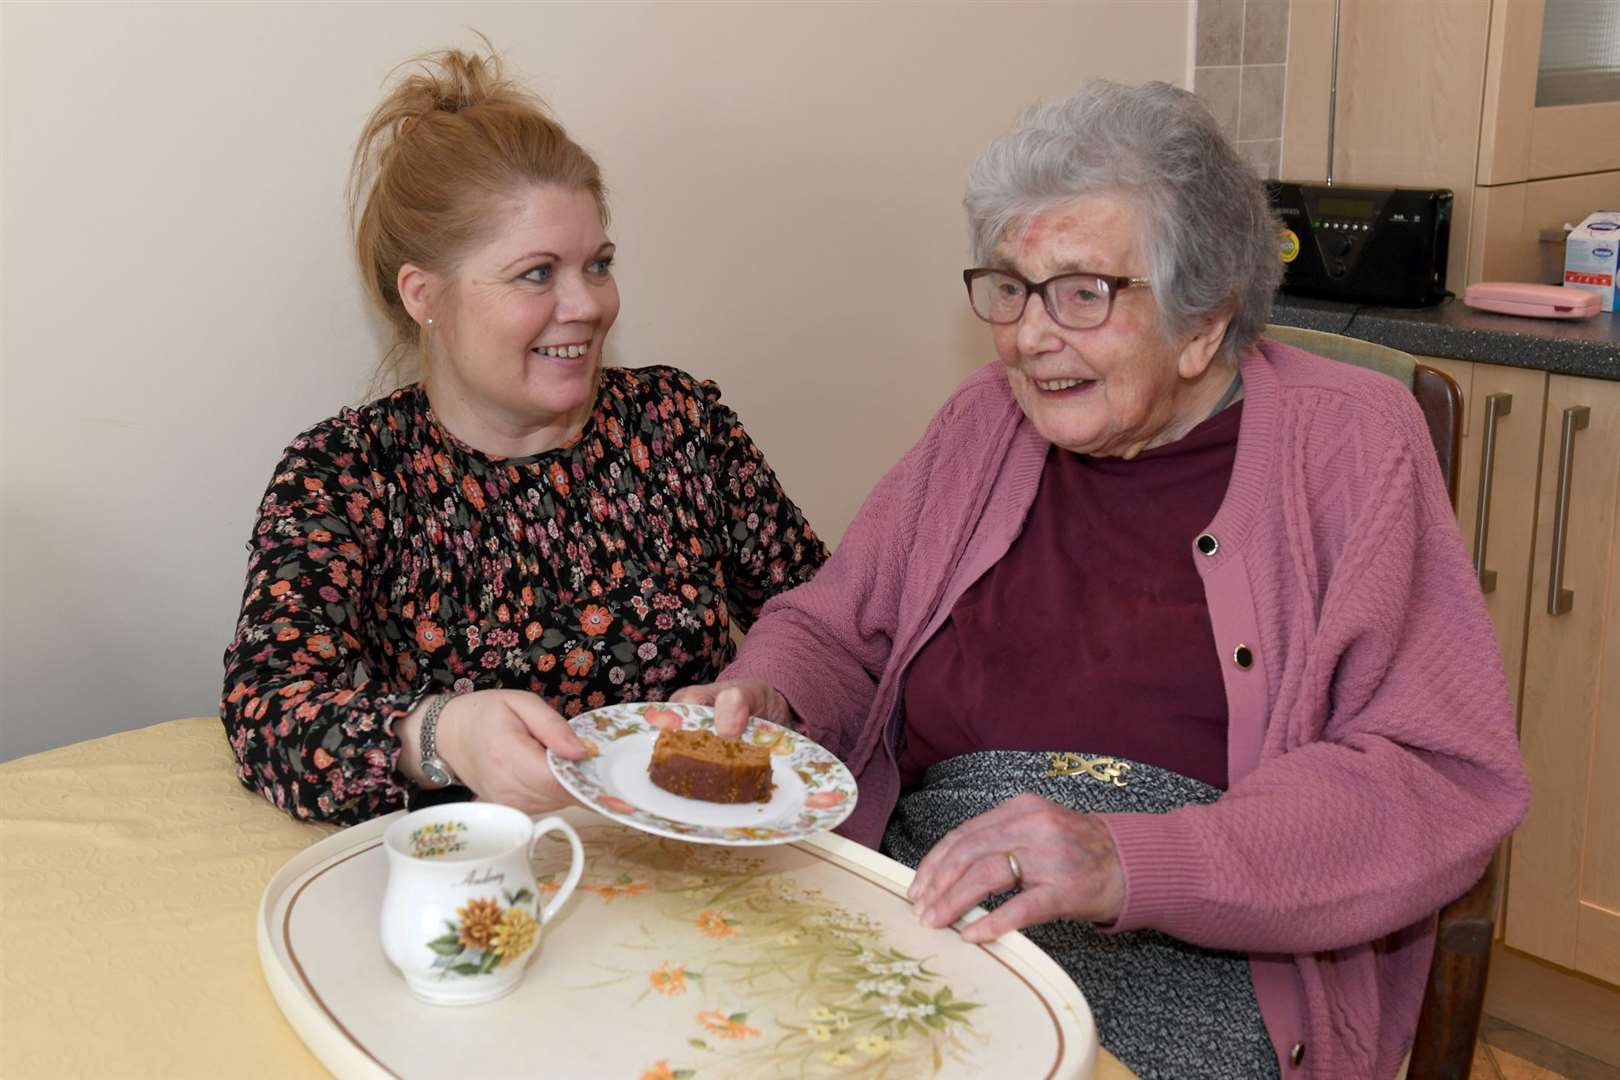 Mrs Audrey Lloyd, 93, of Collingham, with her personal assistant Kirsty Giles. 030220DD2-4